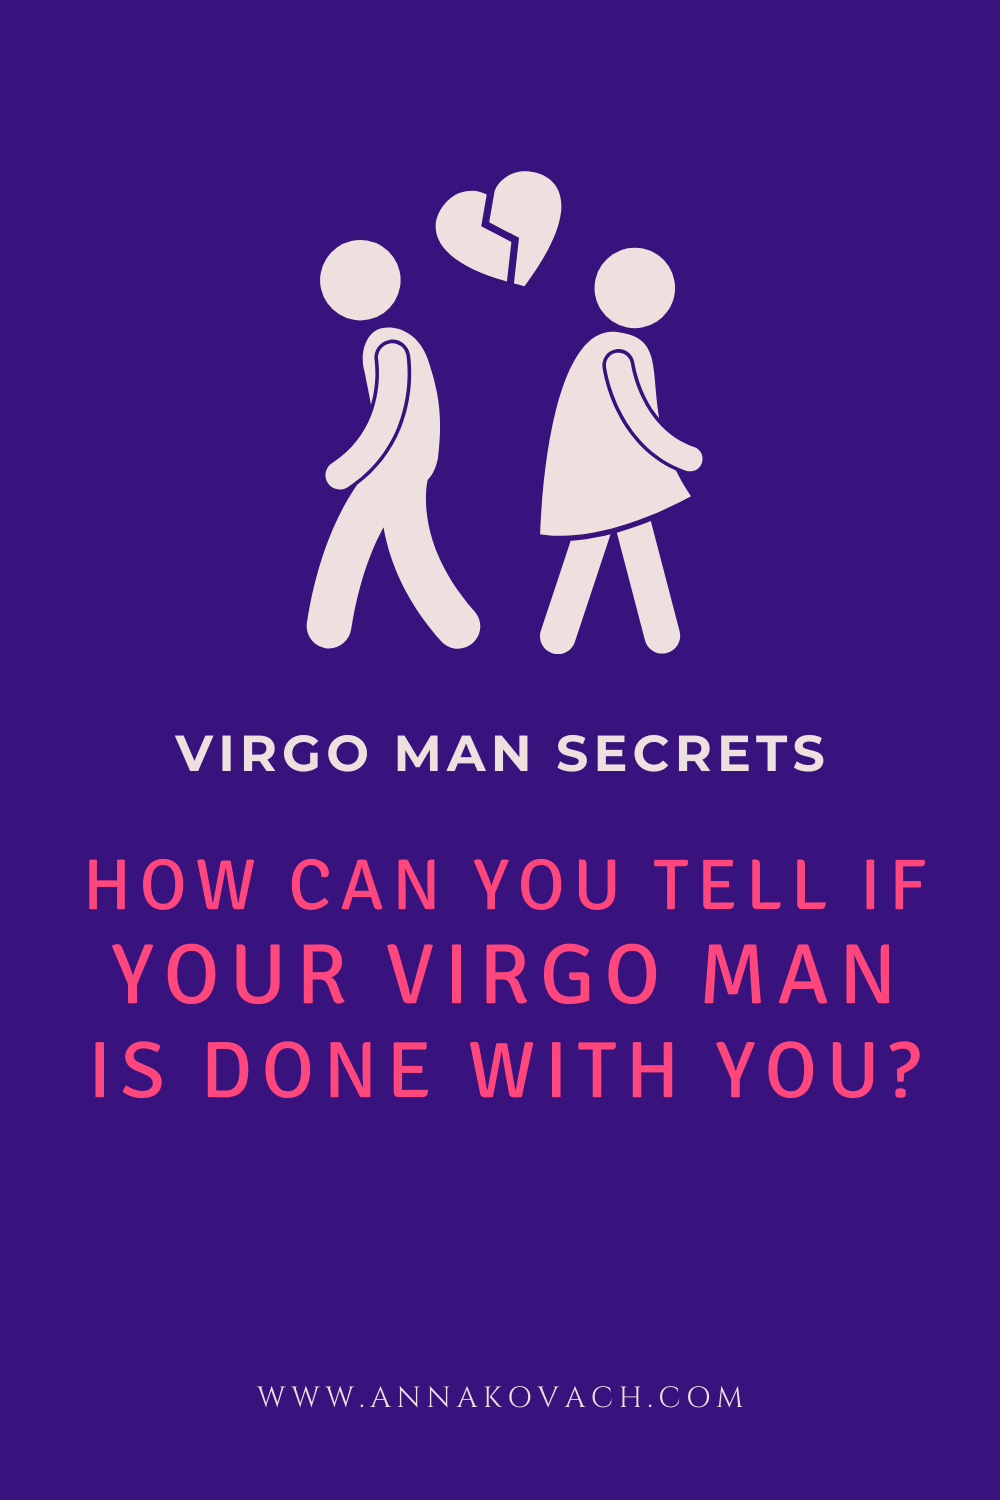 How Can You Tell if Your Virgo Man Is Done With You